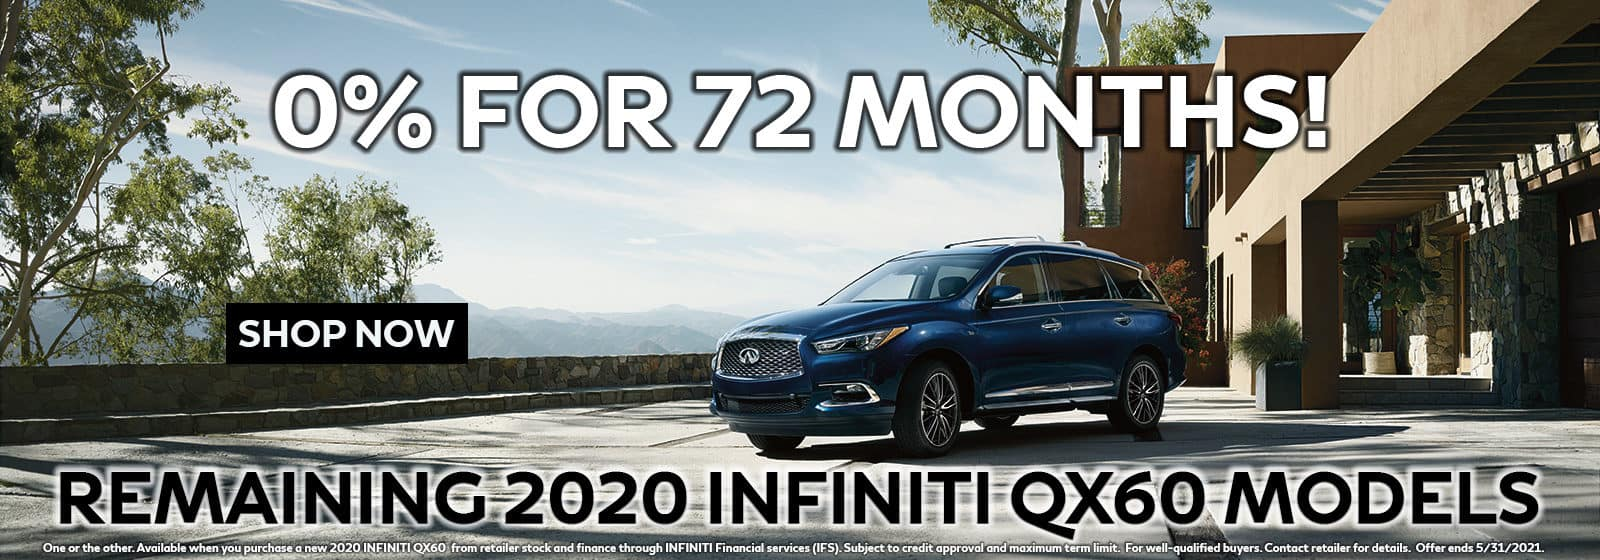 2020 QX60 0% for 72 Months